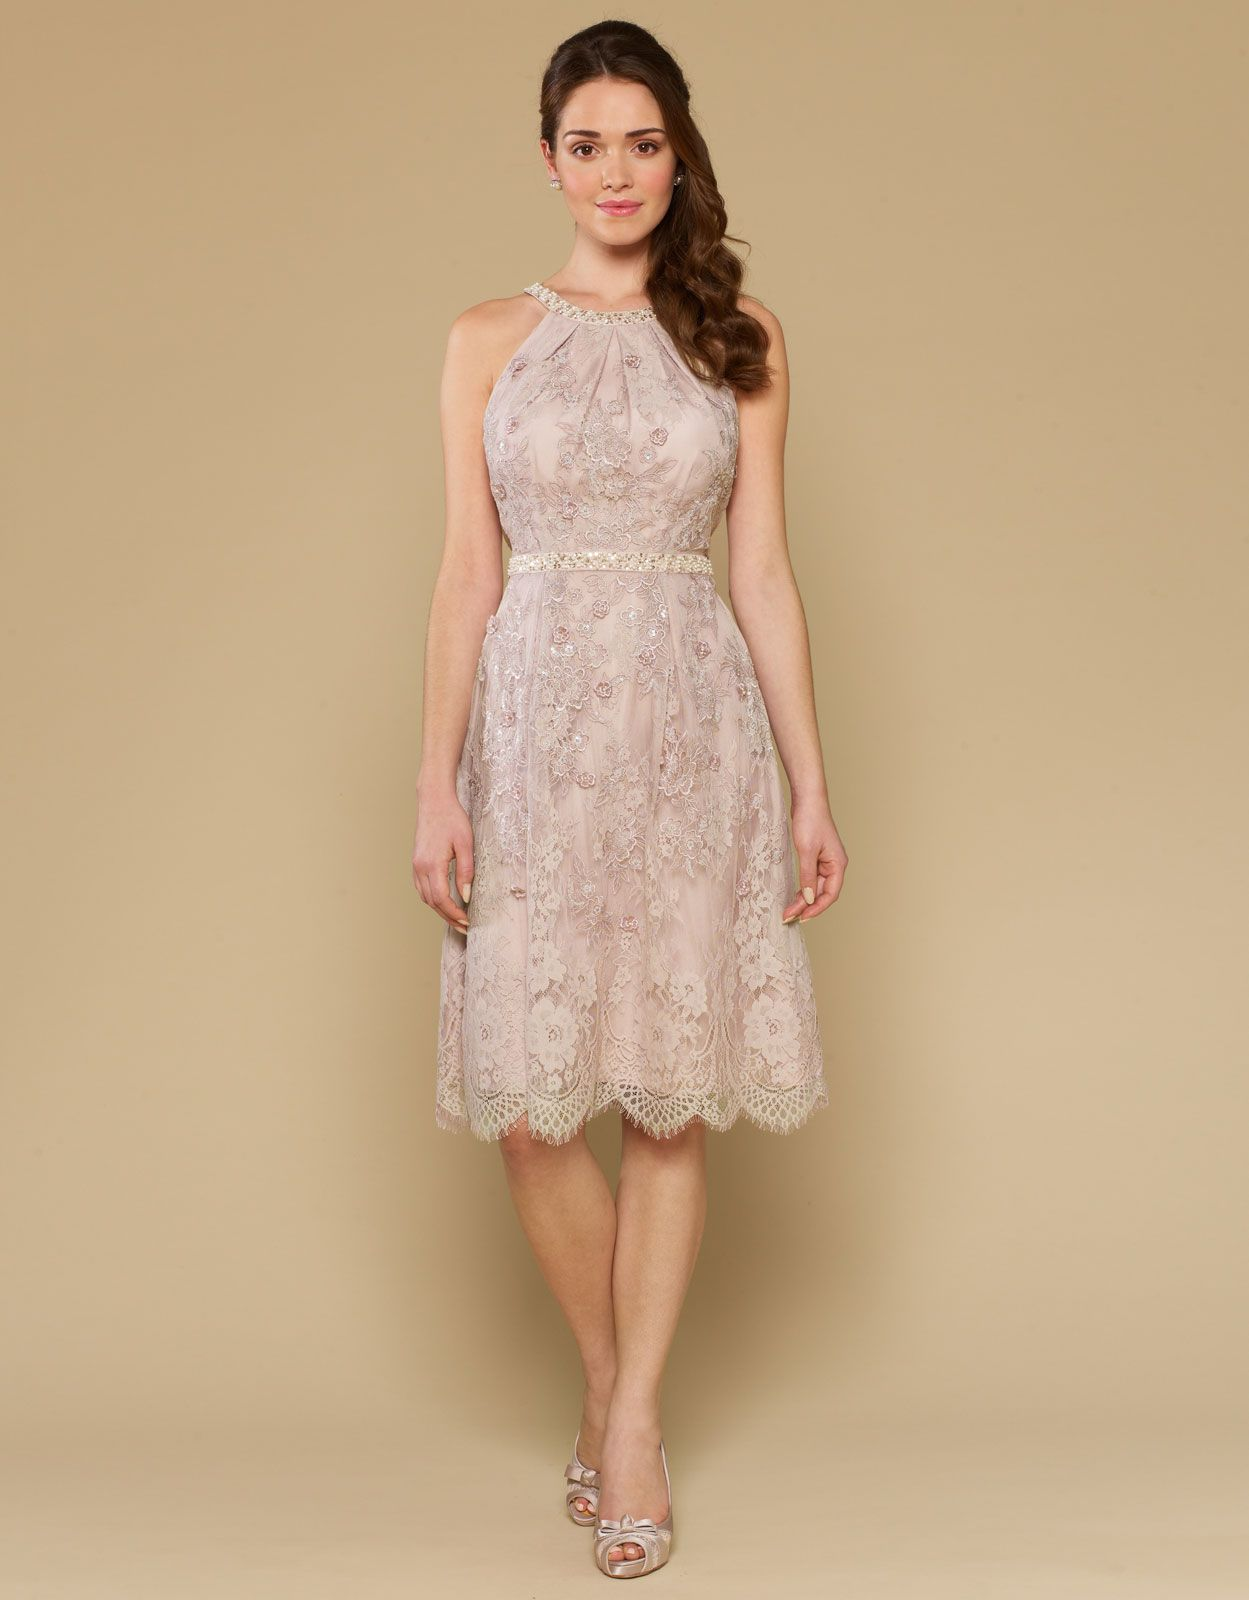 Effie Dress   Nude   Monsoon   Couture and Glamour   Pinterest